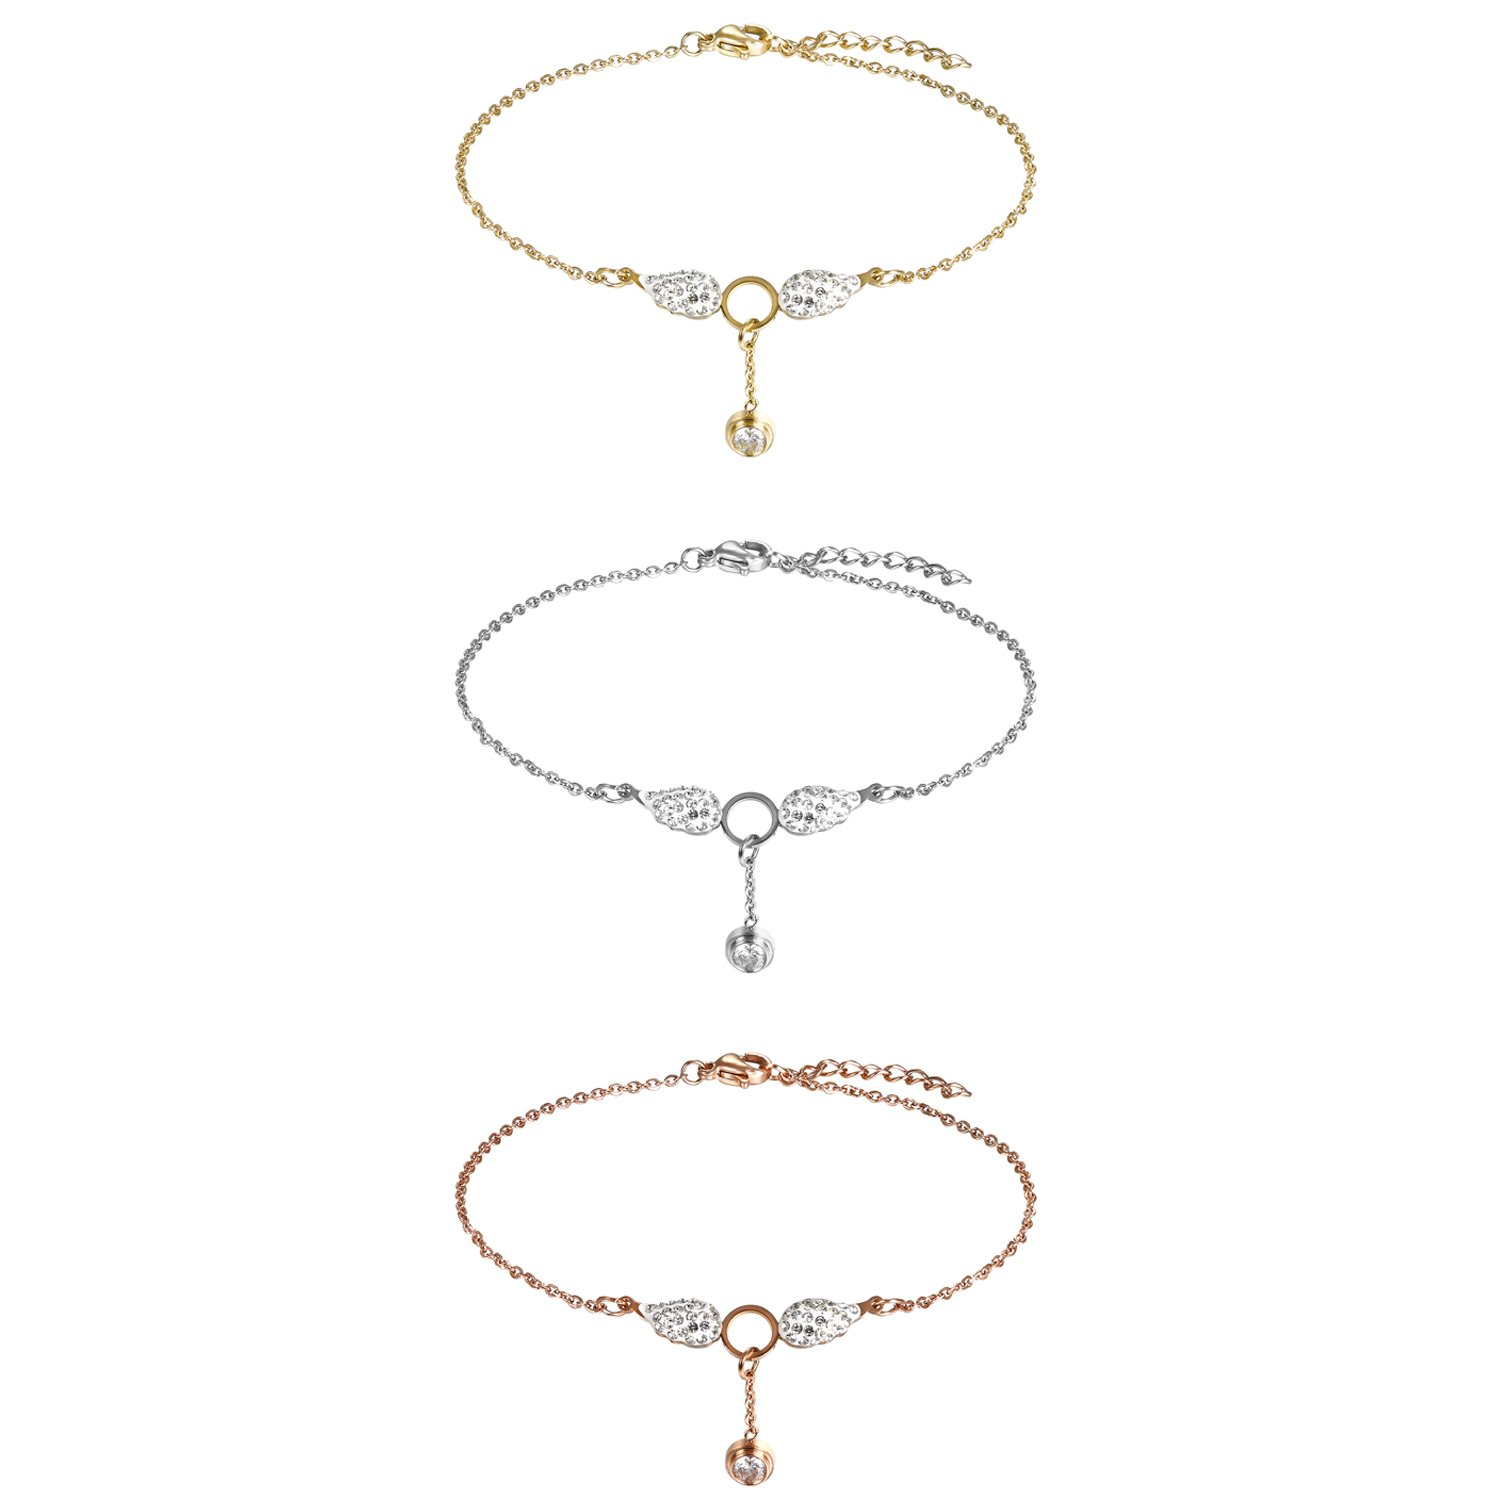 Flongo Womens Girls Charm 3PCS Stainless Steel Angle Wing Bling CZ Link Bracelet Valentine Wedding Anniversary Anklet Gift, 9.64 inch